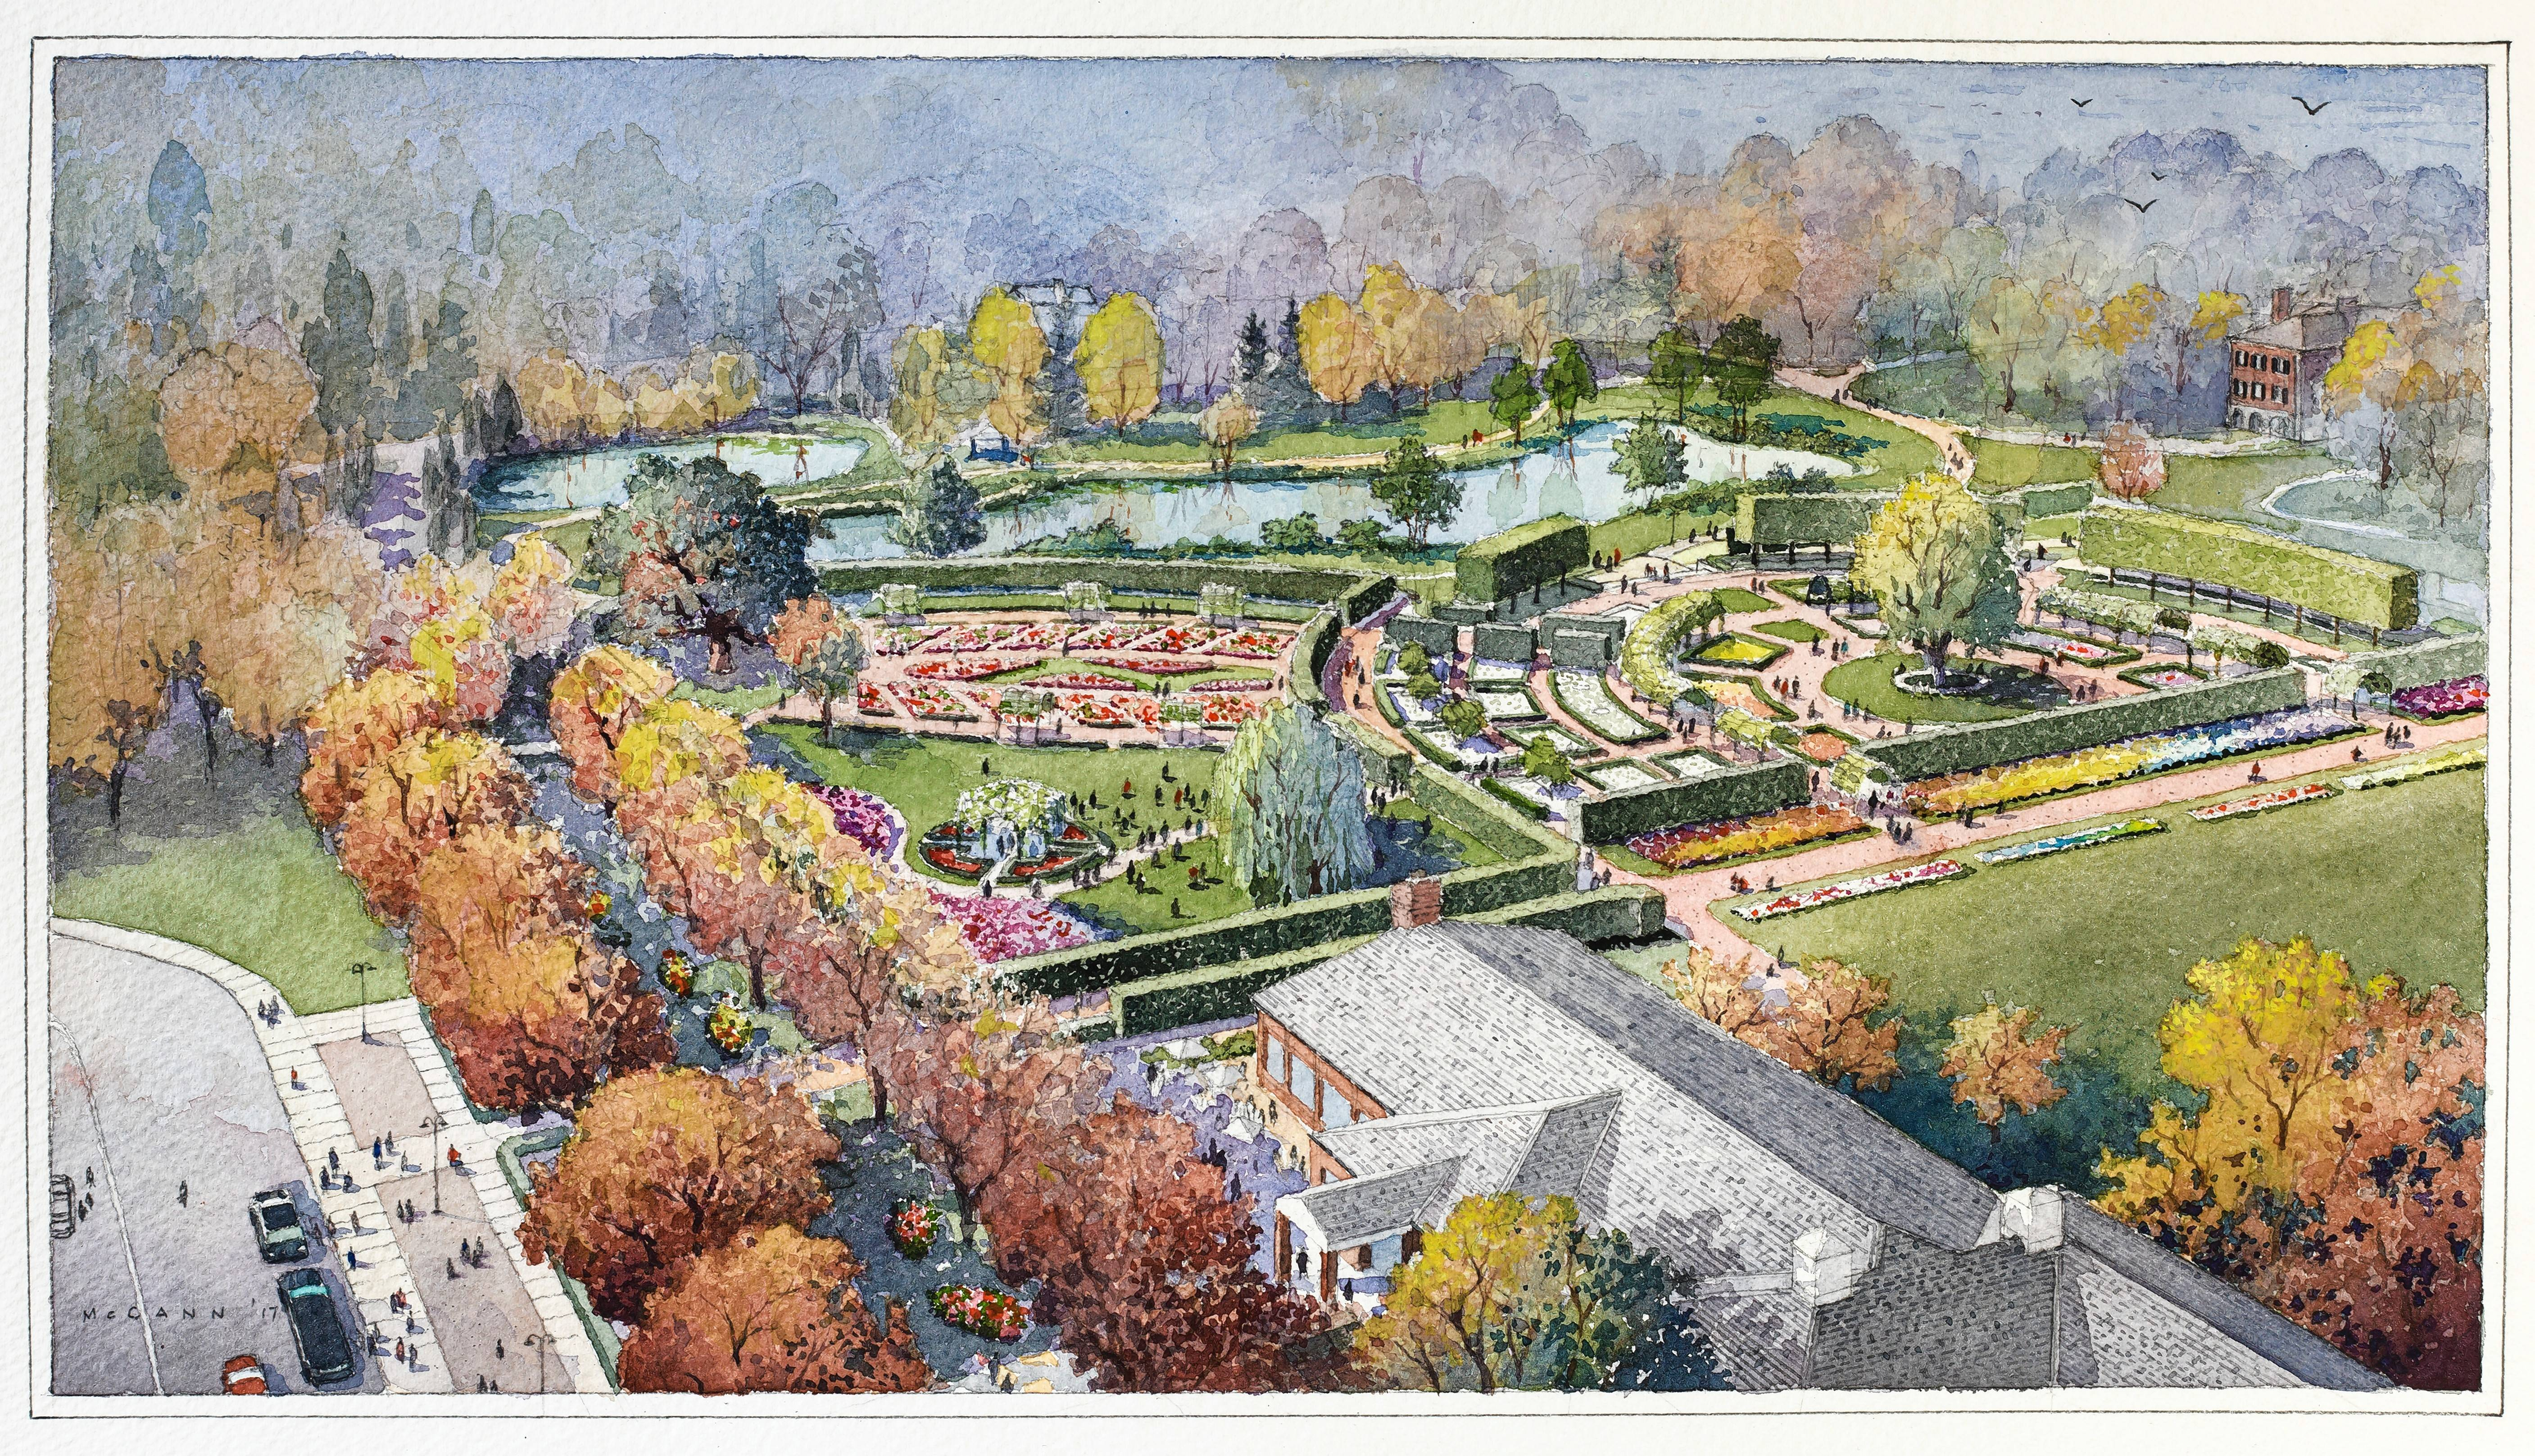 Project New Leaf will update display gardens and the rest of the grounds of Cantigny Park in Wheaton.